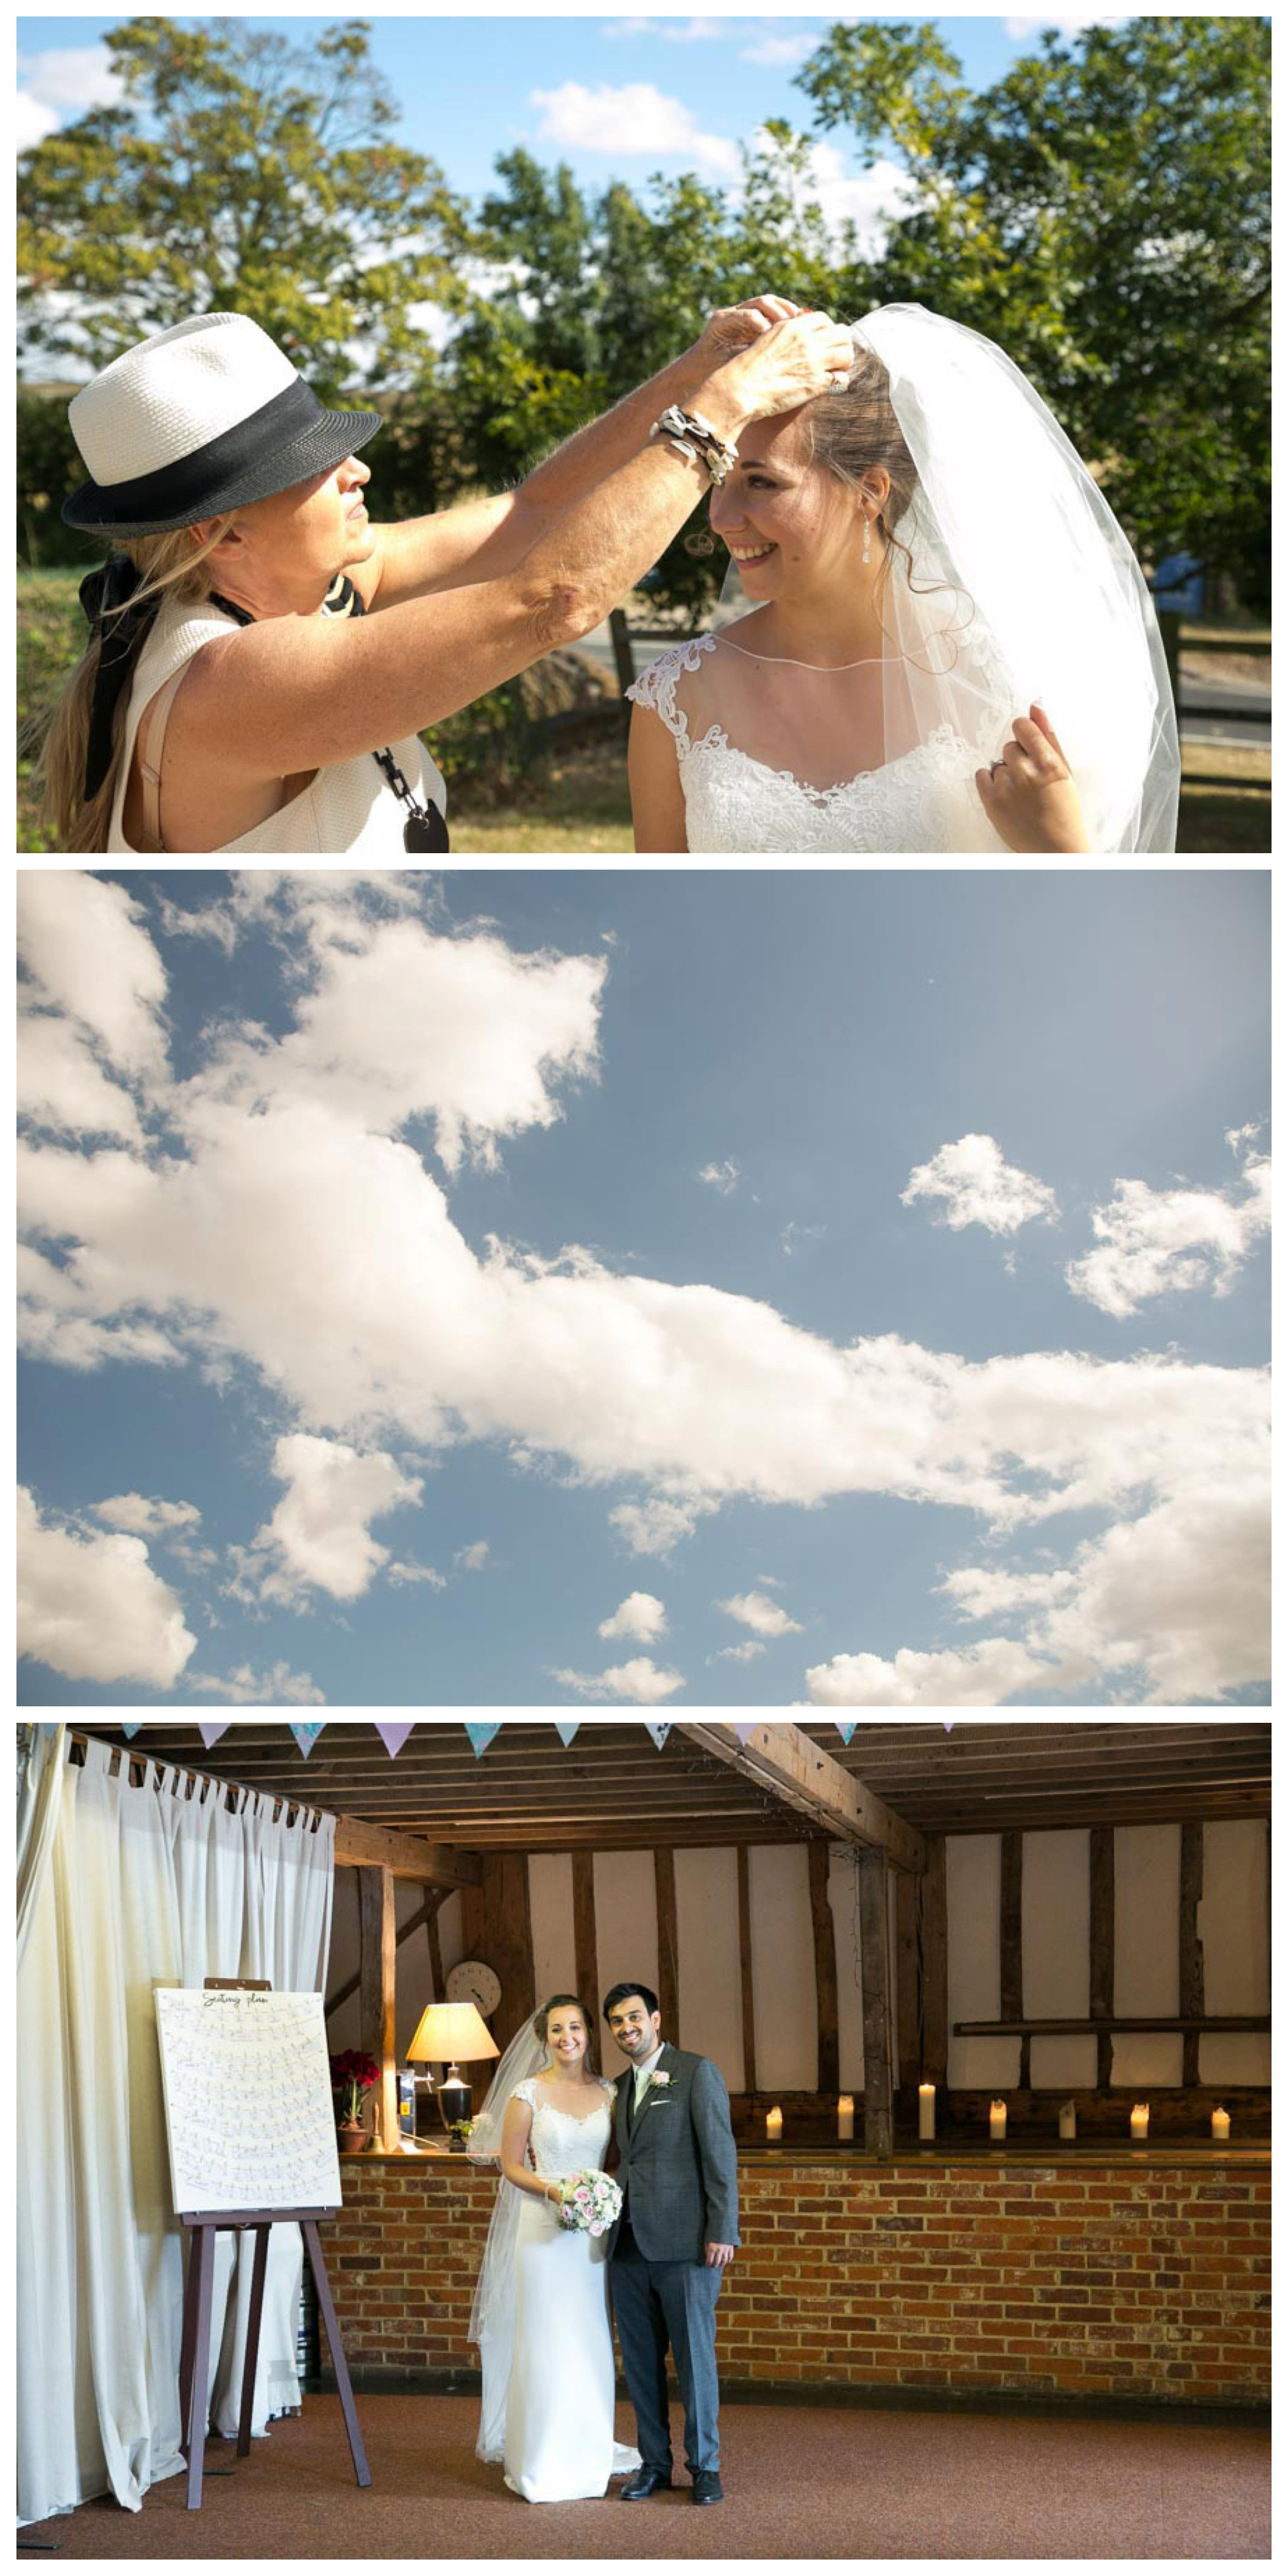 guest fixing brides veil, pretty summer sky and bride and groom about to enter the barn for their wedding